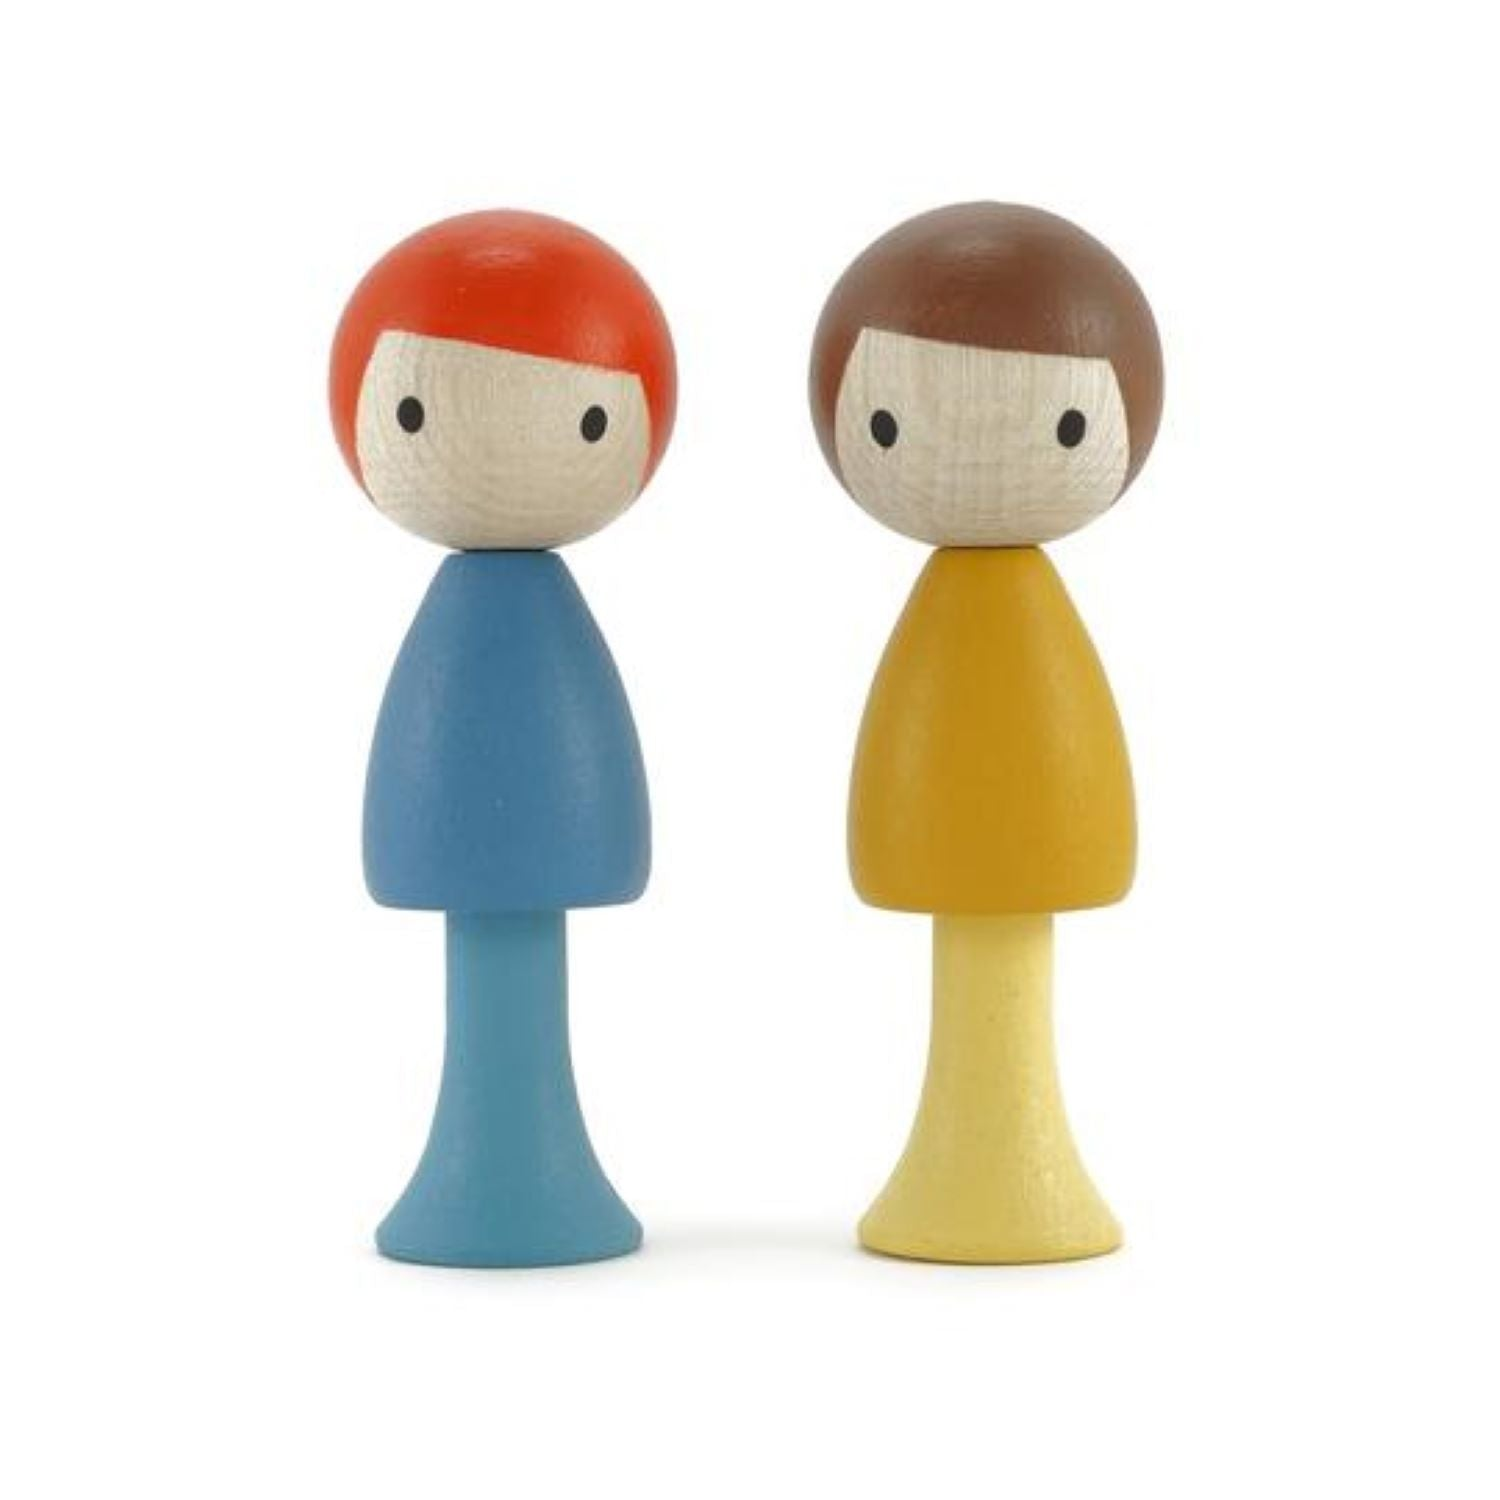 Clicques - Marco and Ben Wooden Figurines